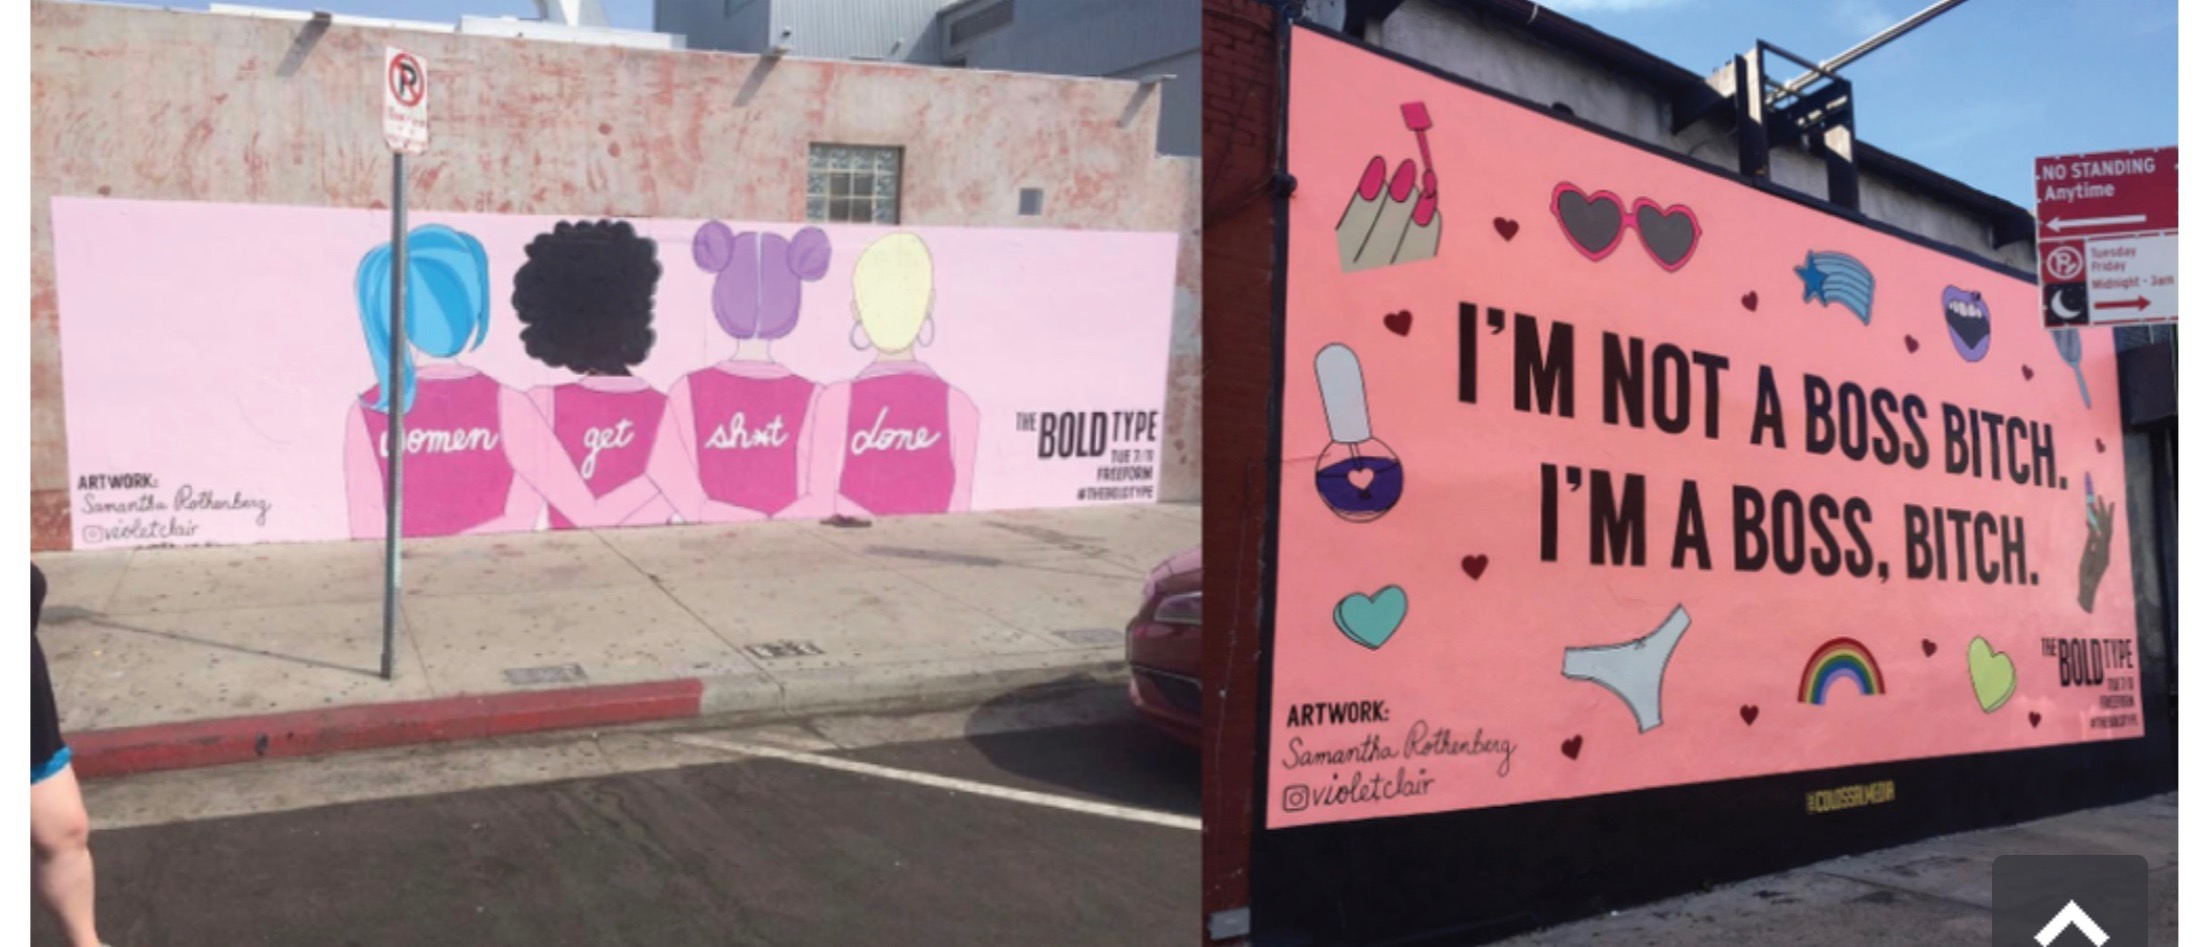 Two murals (one in LA, the other in NYC), painted by Samantha Rothenberg